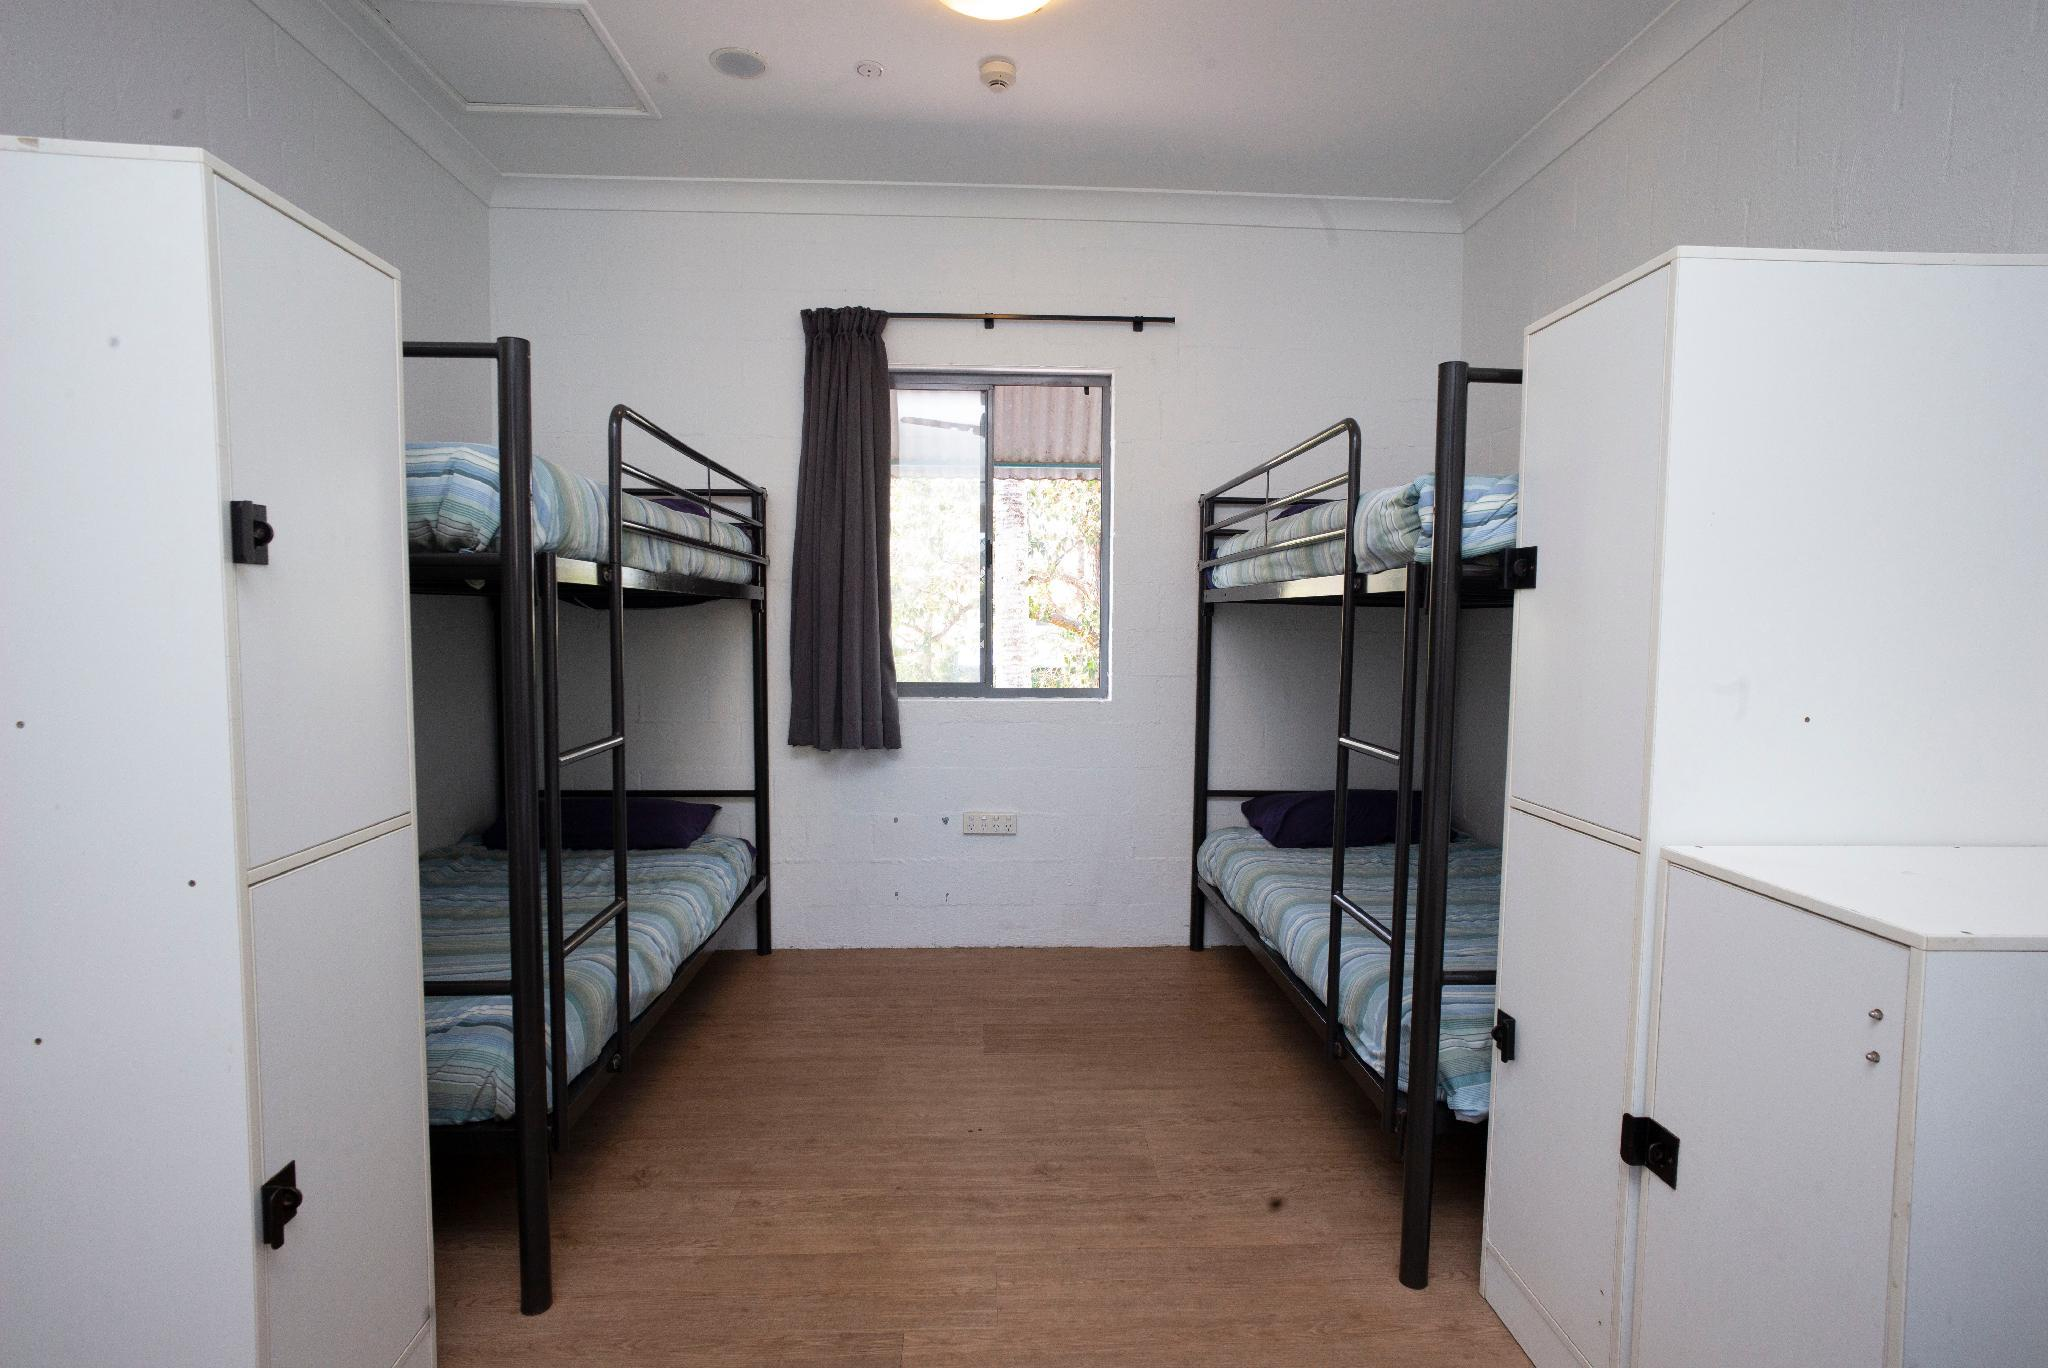 1 Person in 5-Bed Dormitory - Female Only